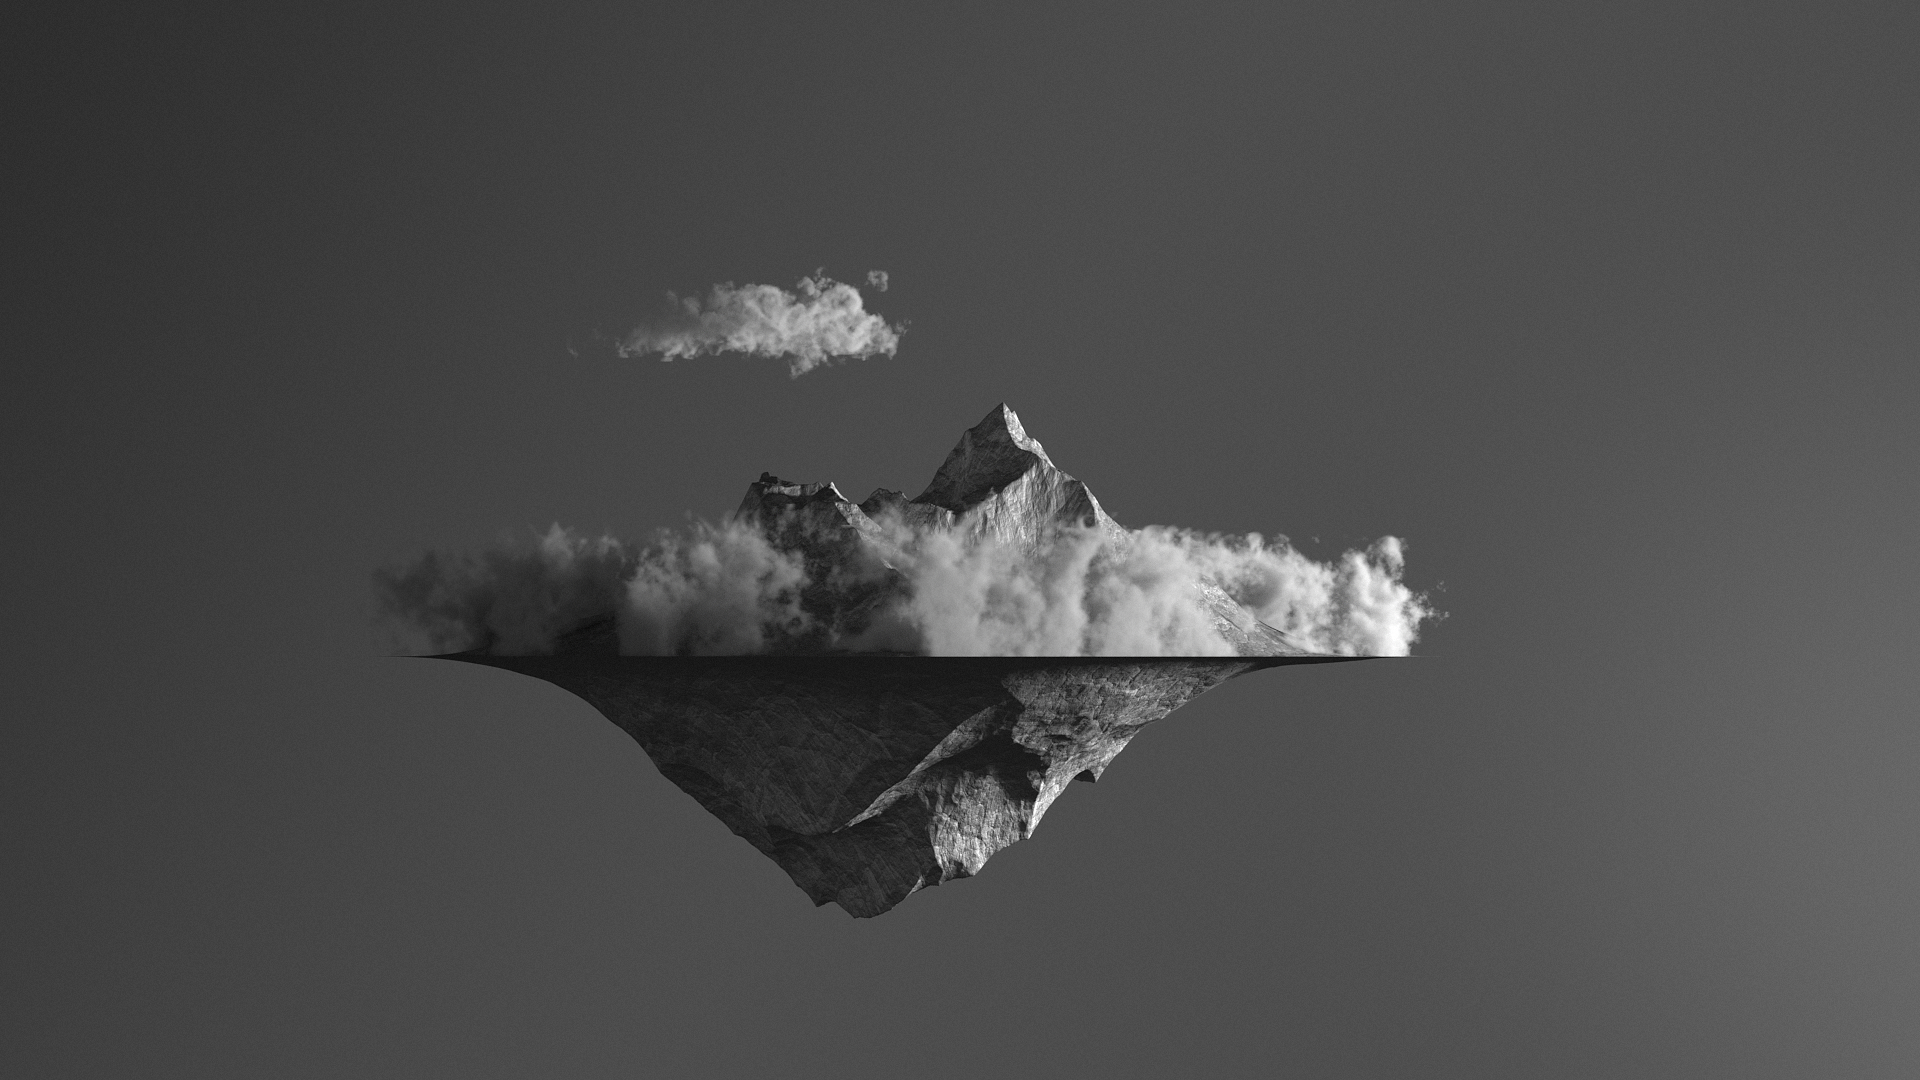 Volume Rendering with Octane Render for Cinema 4D - Generator - Floating Island #1